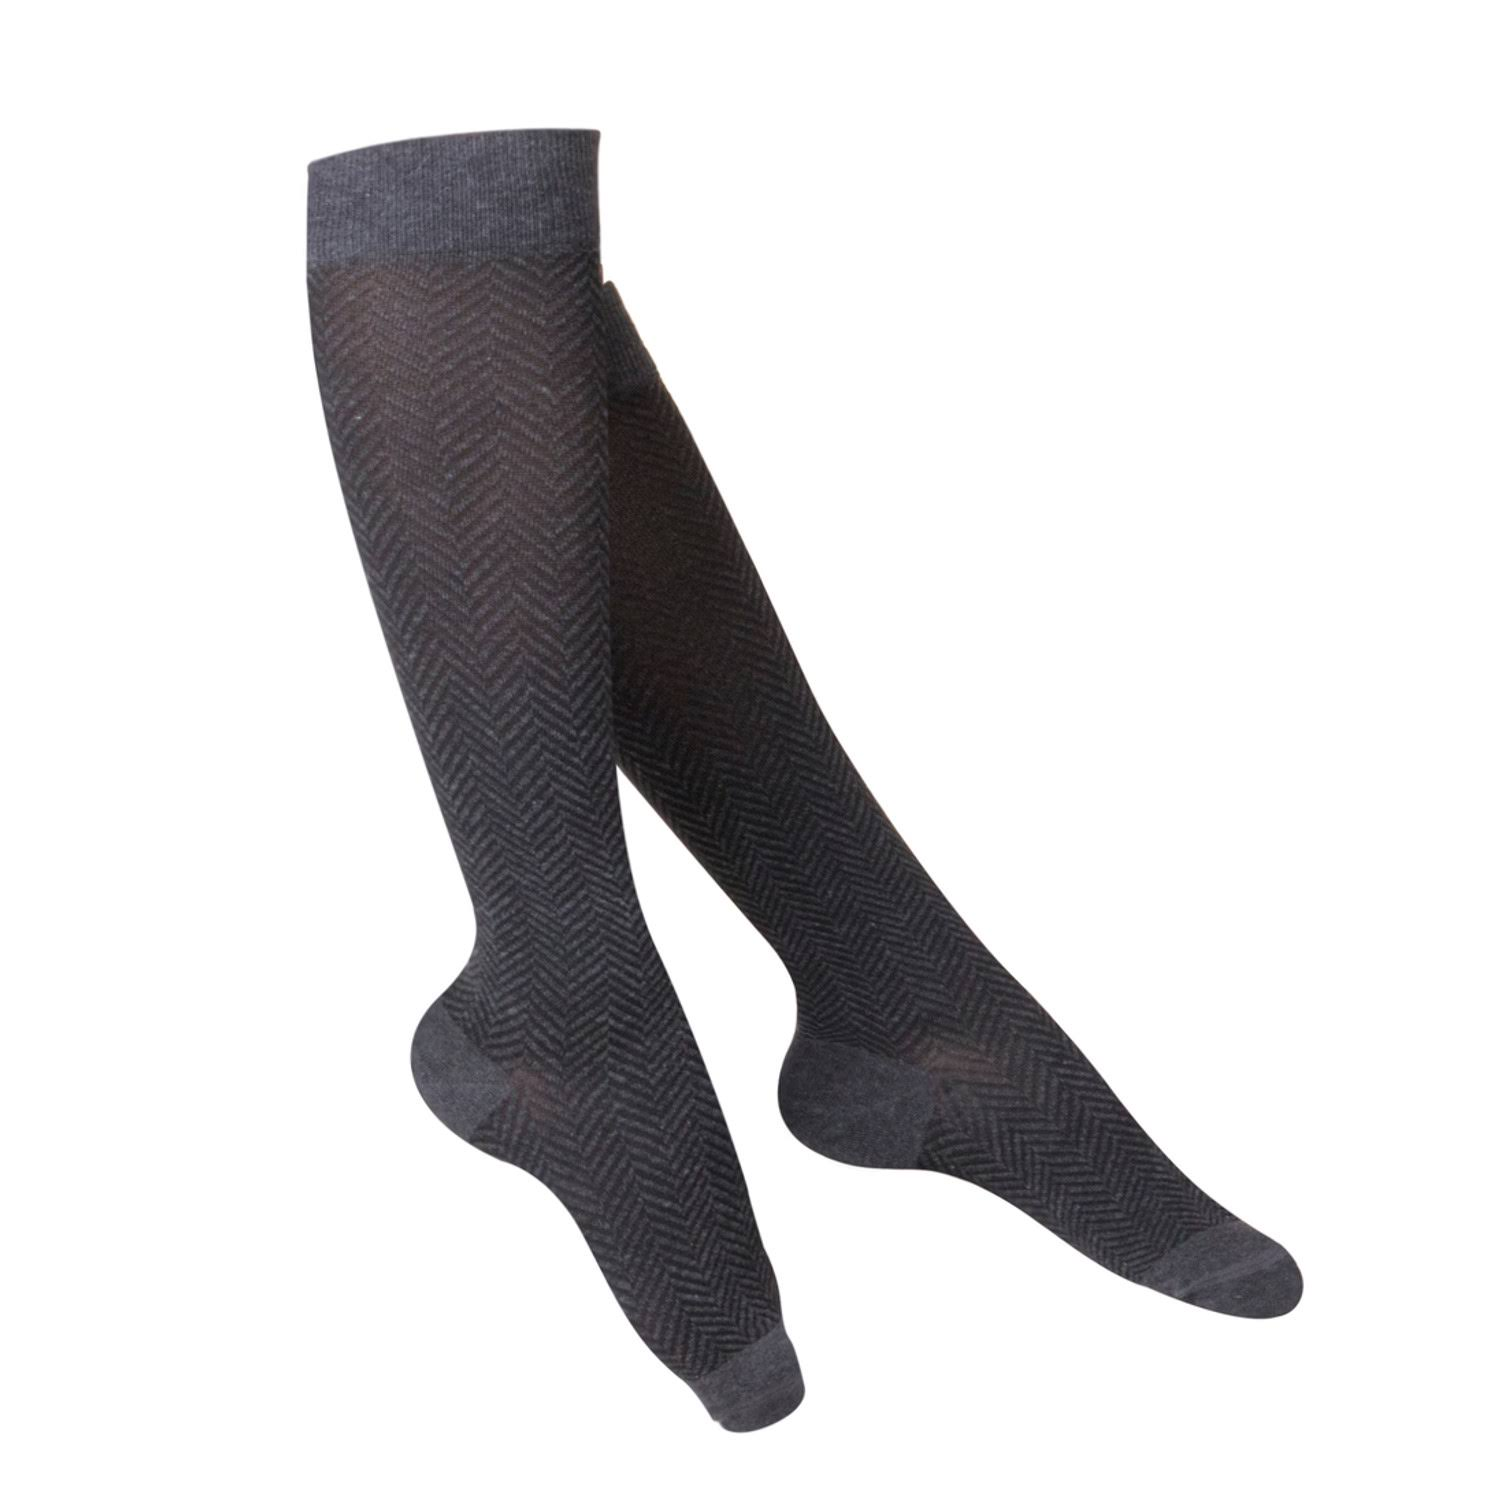 Touch Women's Knee High Compression Socks - Pattern Knit, 15-20 mmHg, Charcoal, Medium